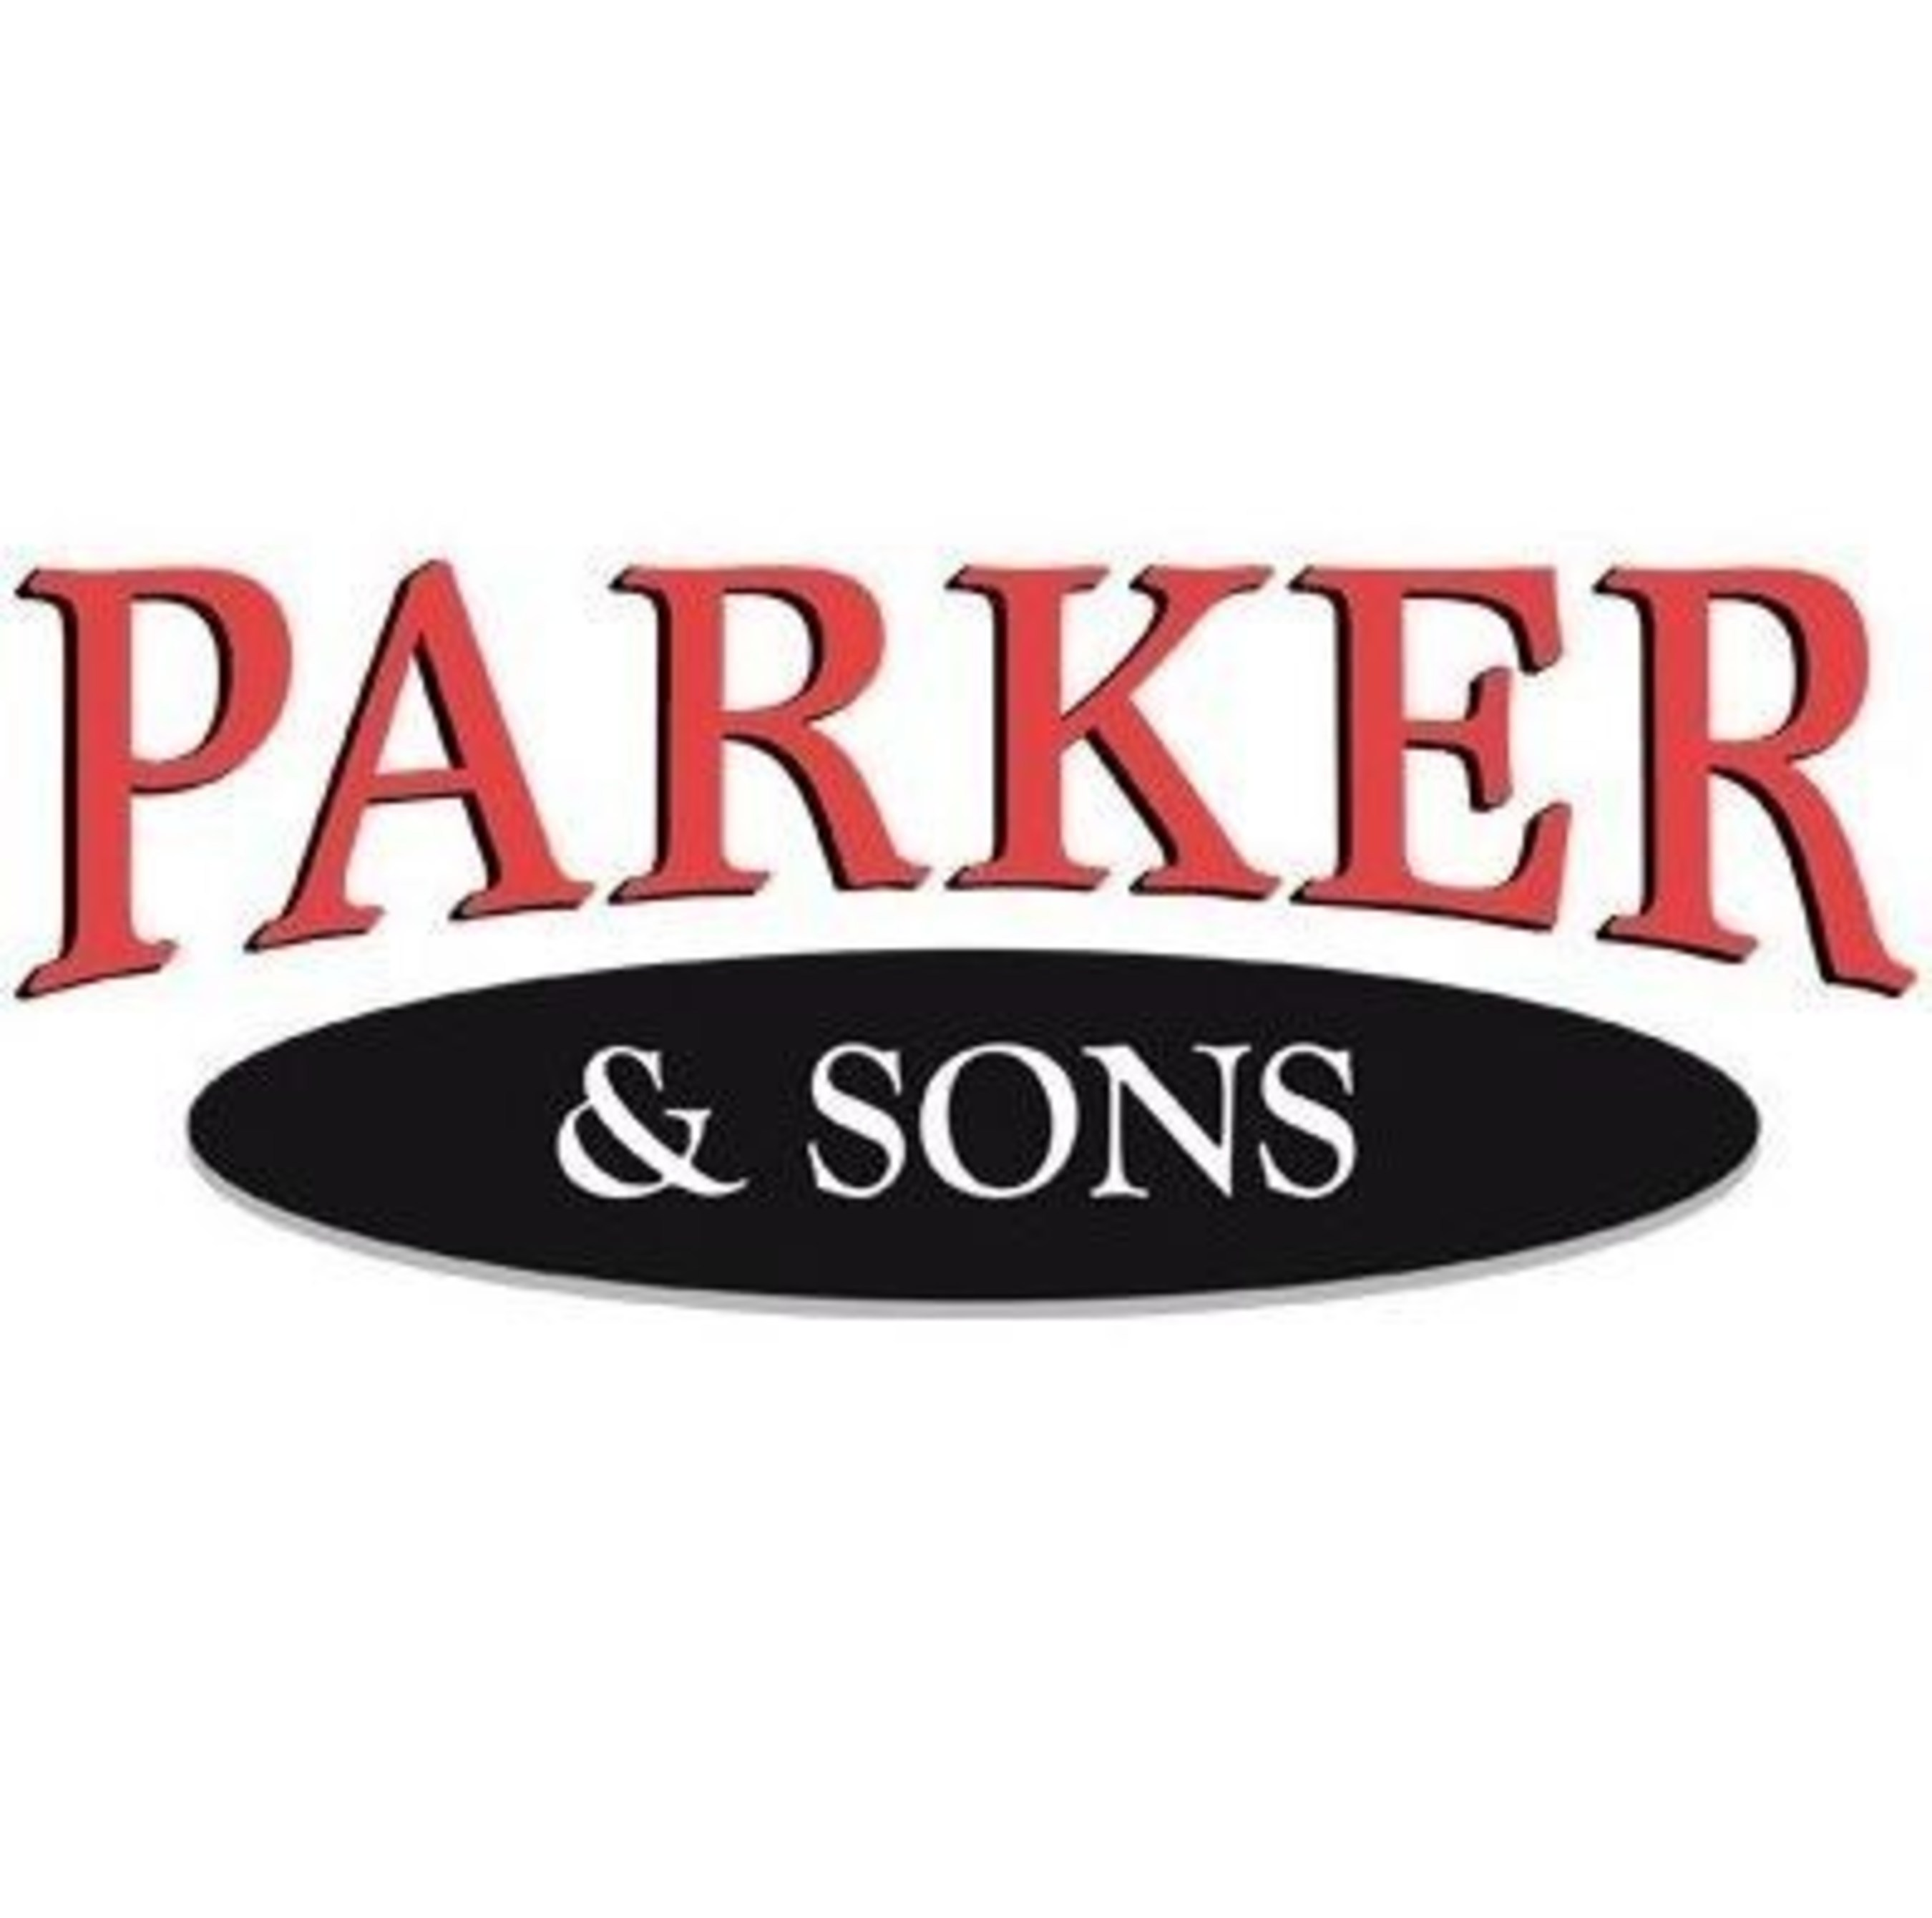 Parker & Sons Offers Energy Saving Tips for the Winter Season